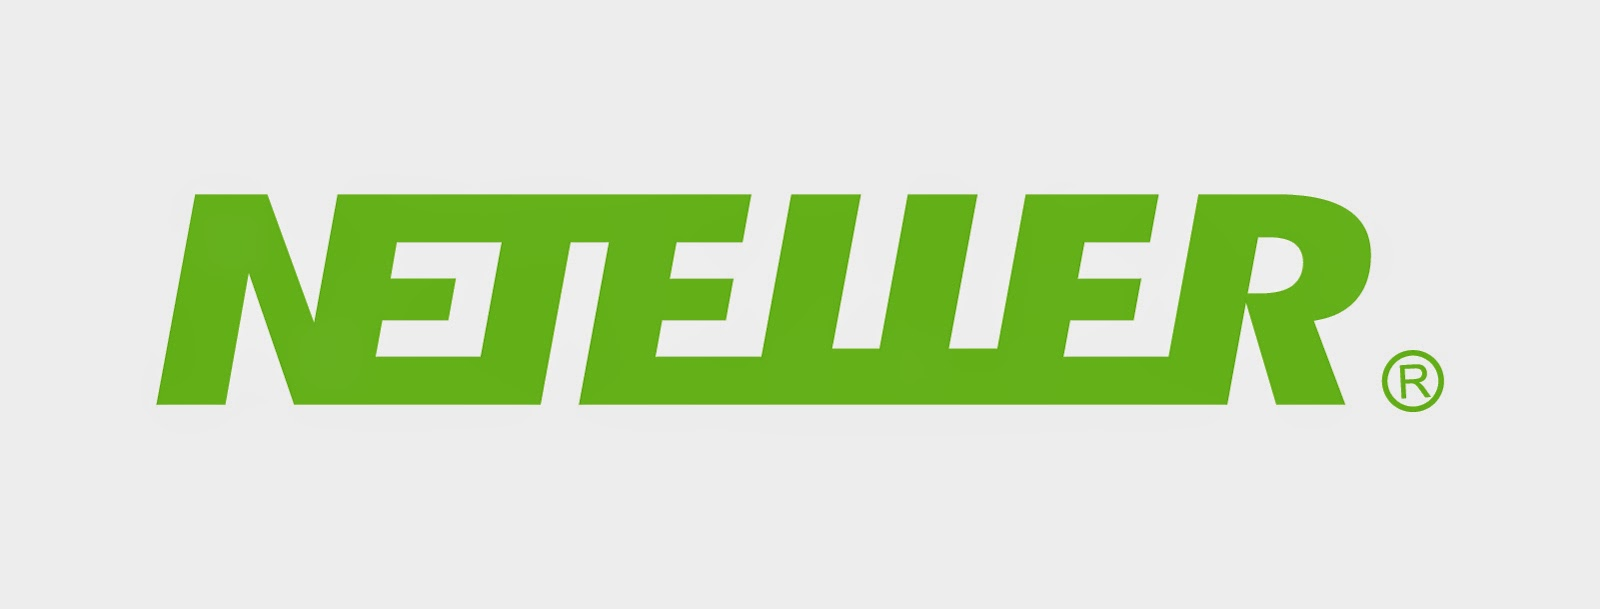 buy verified neteller account – Welcome to Shop-Accounts